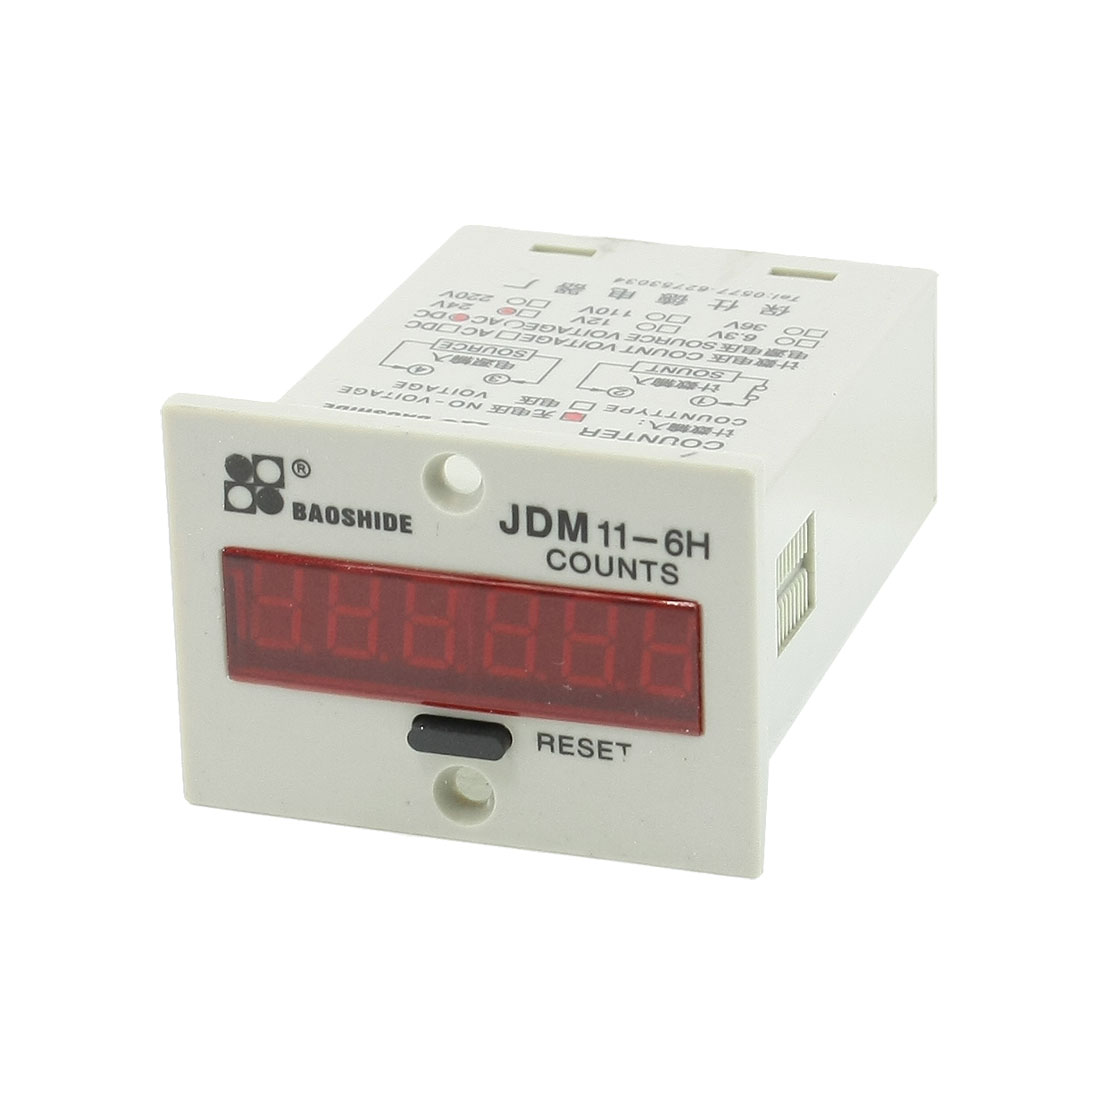 JDM11-6H DC 24V Resettable 6 Digits LED Display Electric Digital Counter